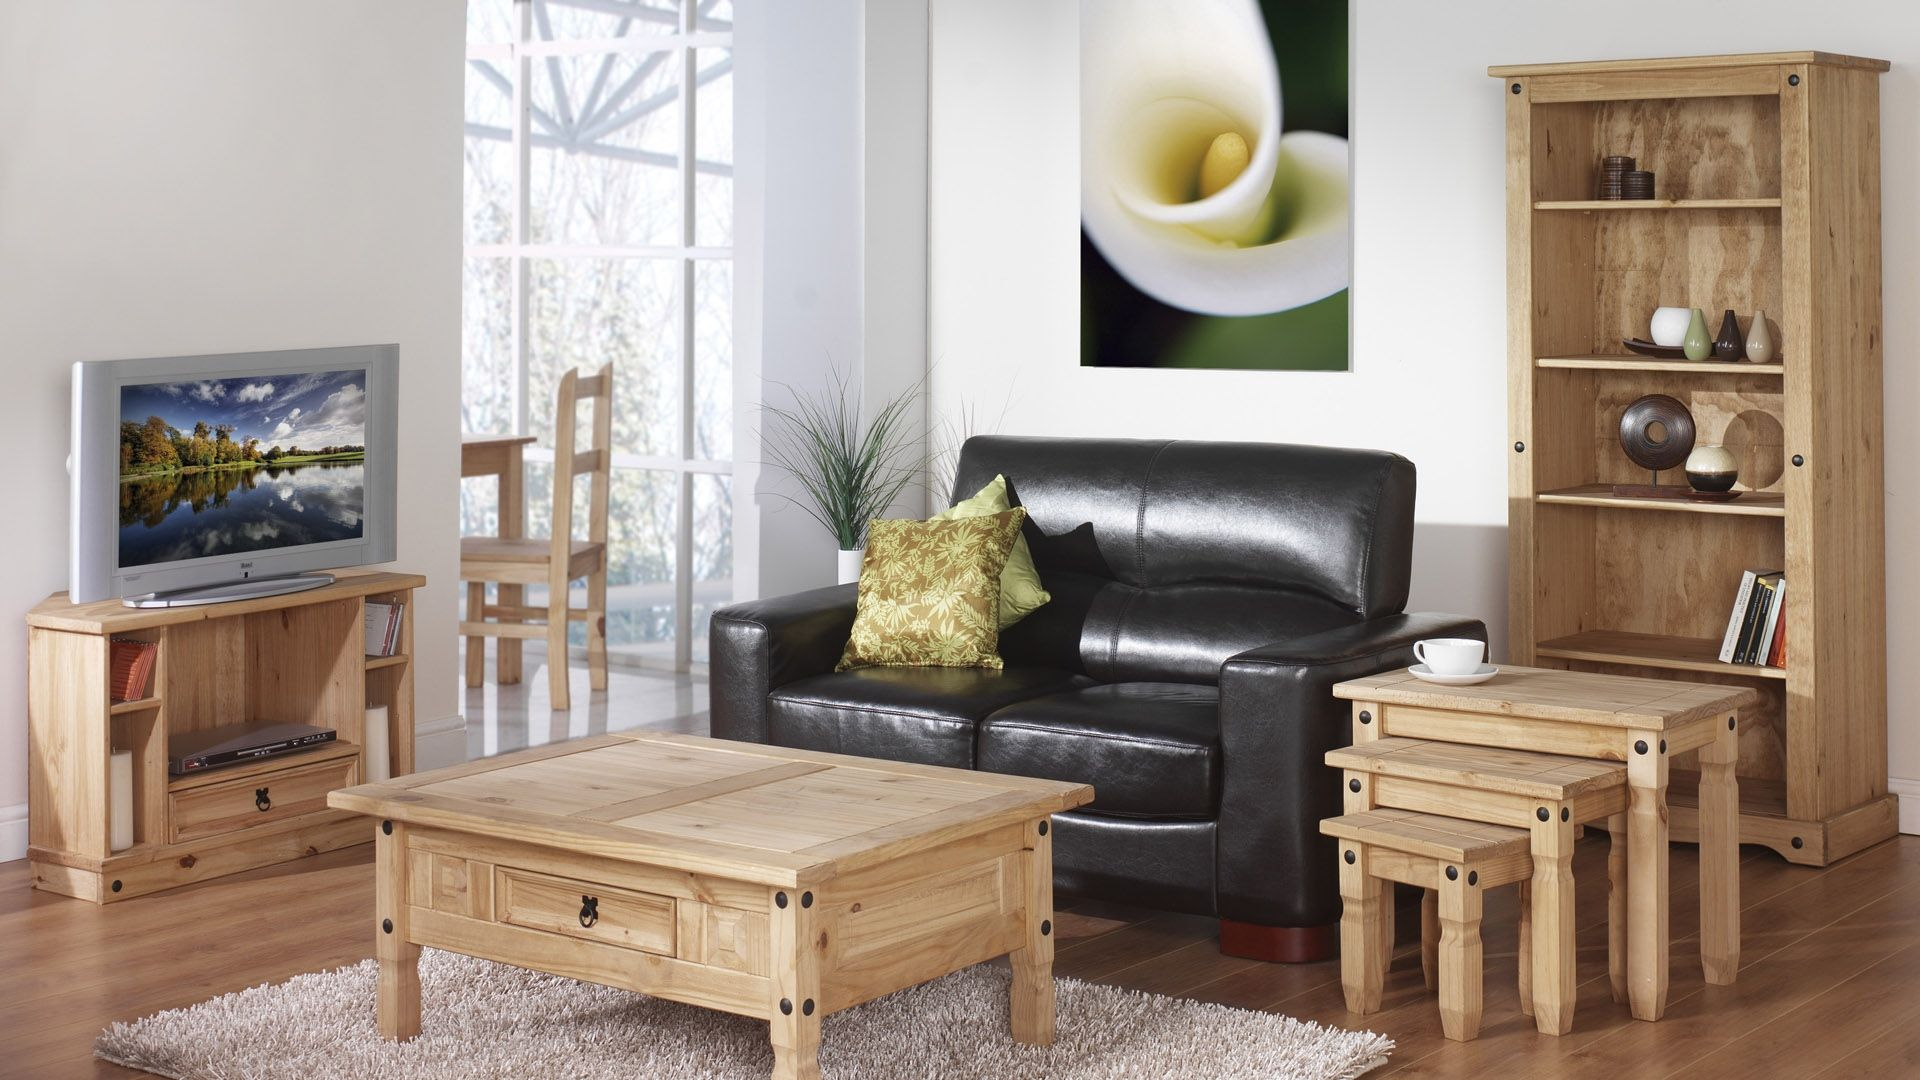 room, sofa, cabinets - http://www.wallpapers4u.org/room-sofa-cabinets/